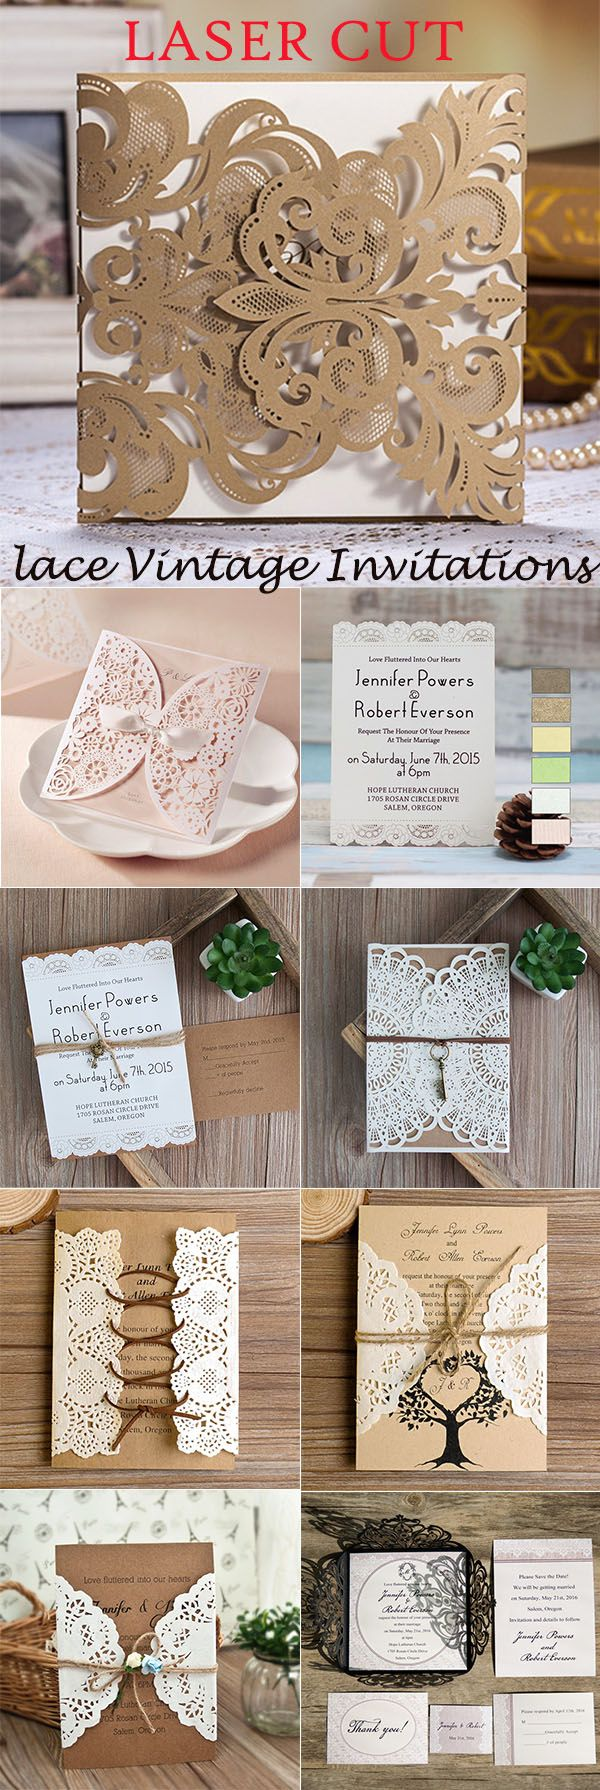 laser cut lace vintage wedding invitations